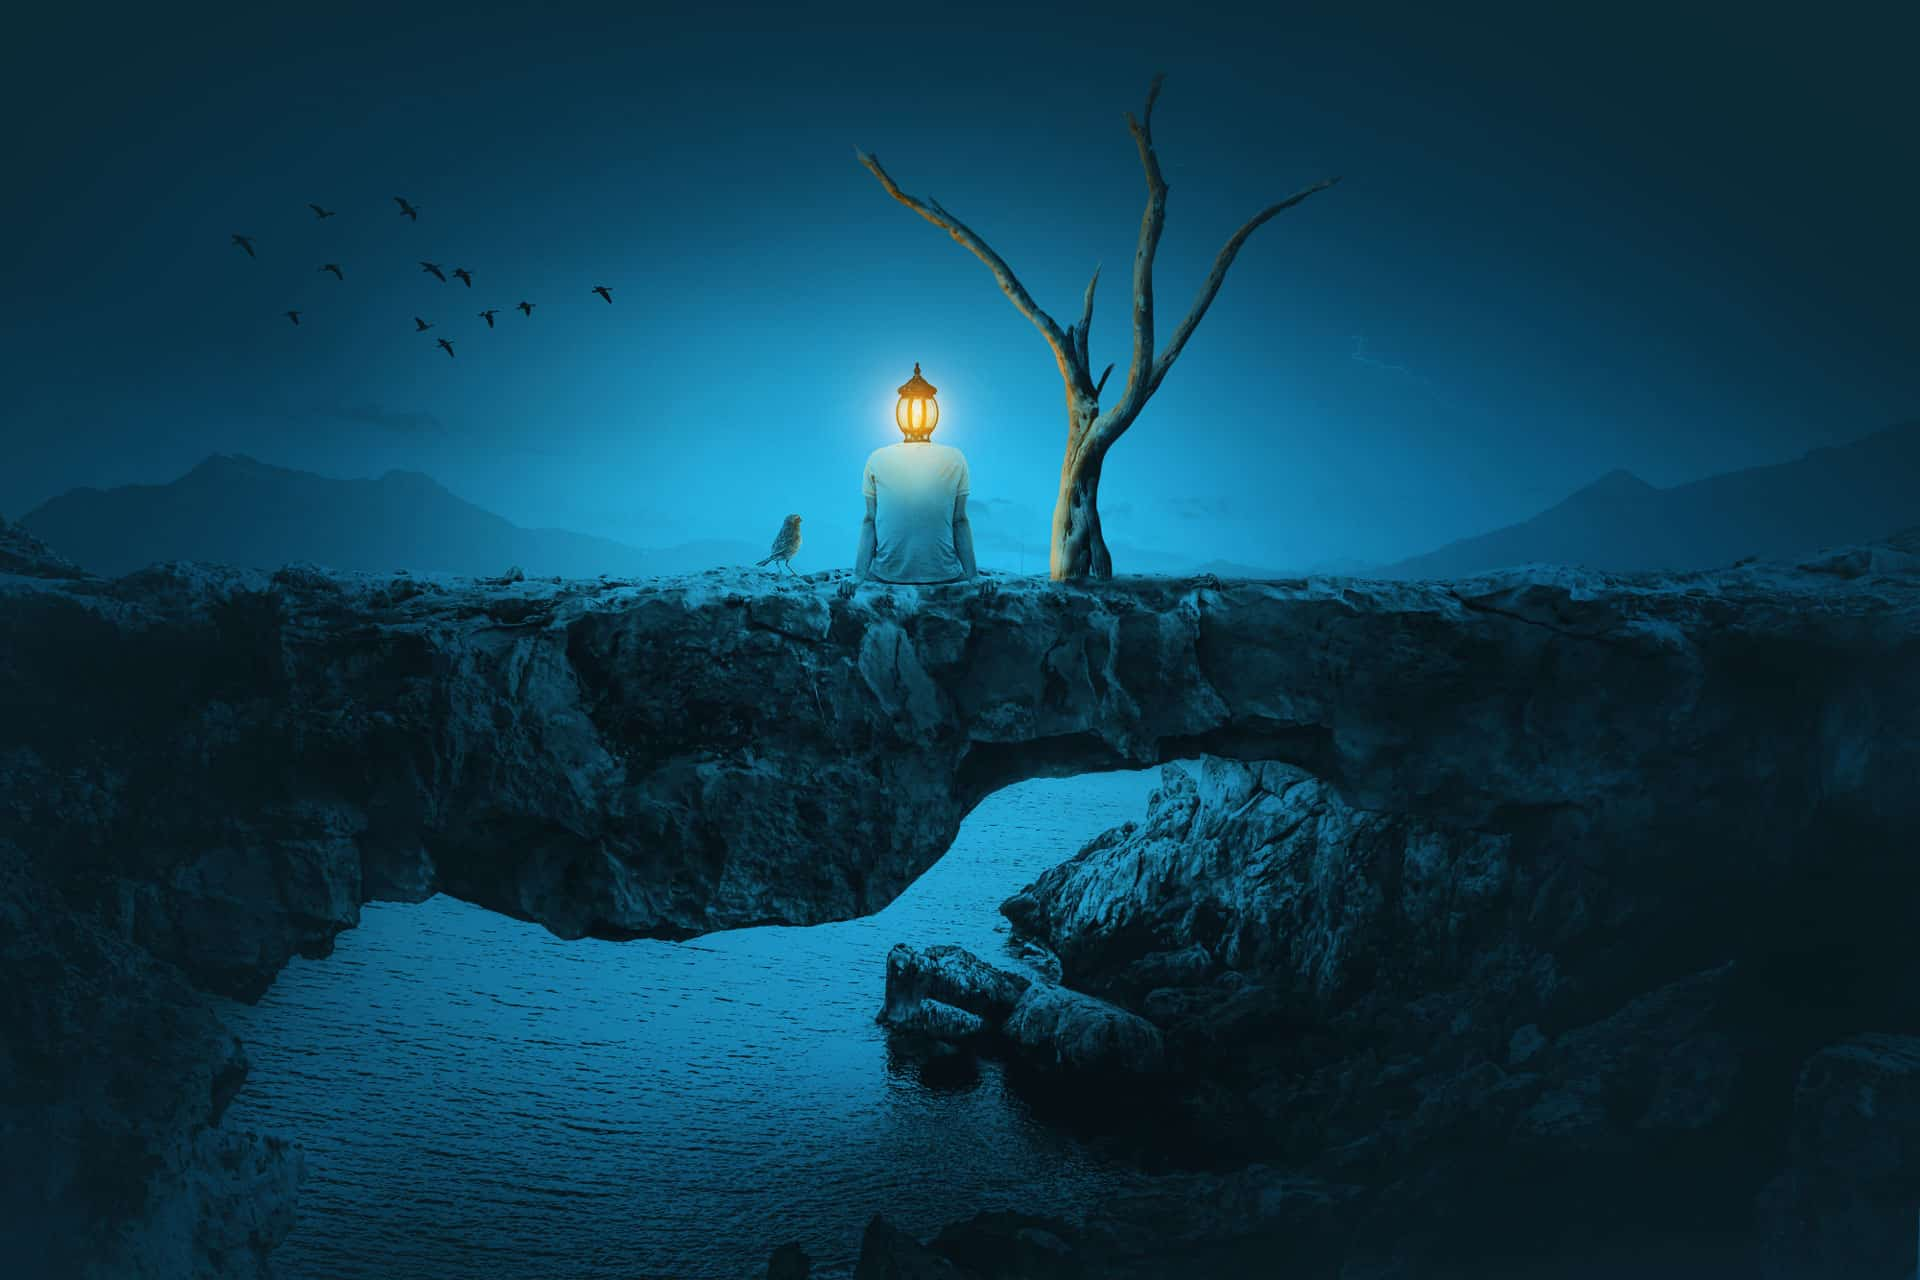 How to Create a Surreal Photo Manipulation of a Man with Head of Lamp